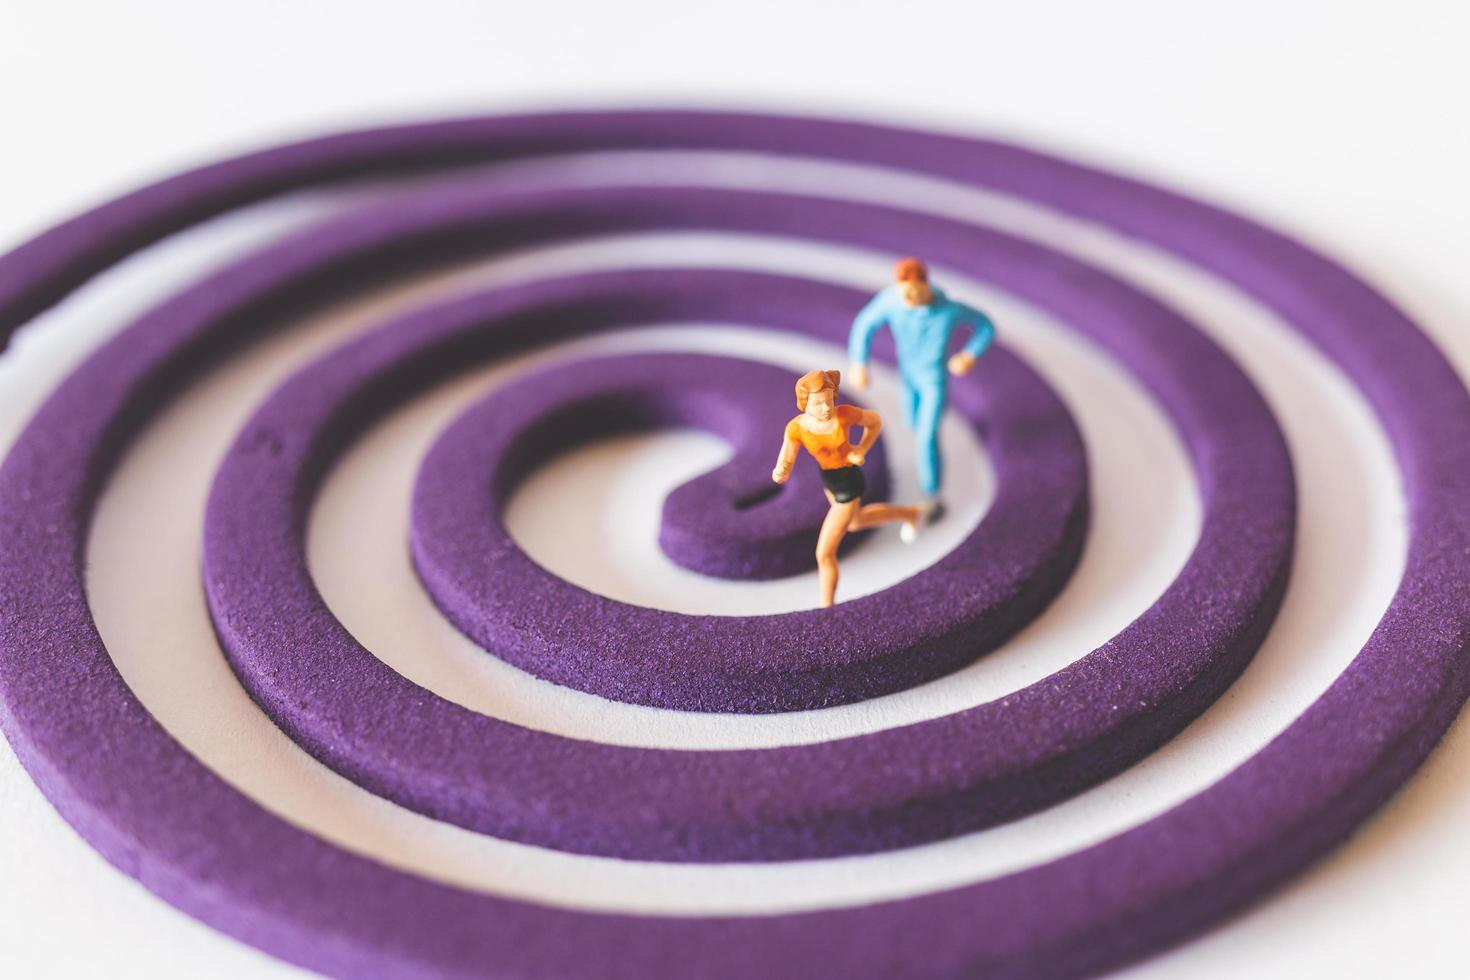 Couple miniature fonctionnant sur un champ circulaire violet photo